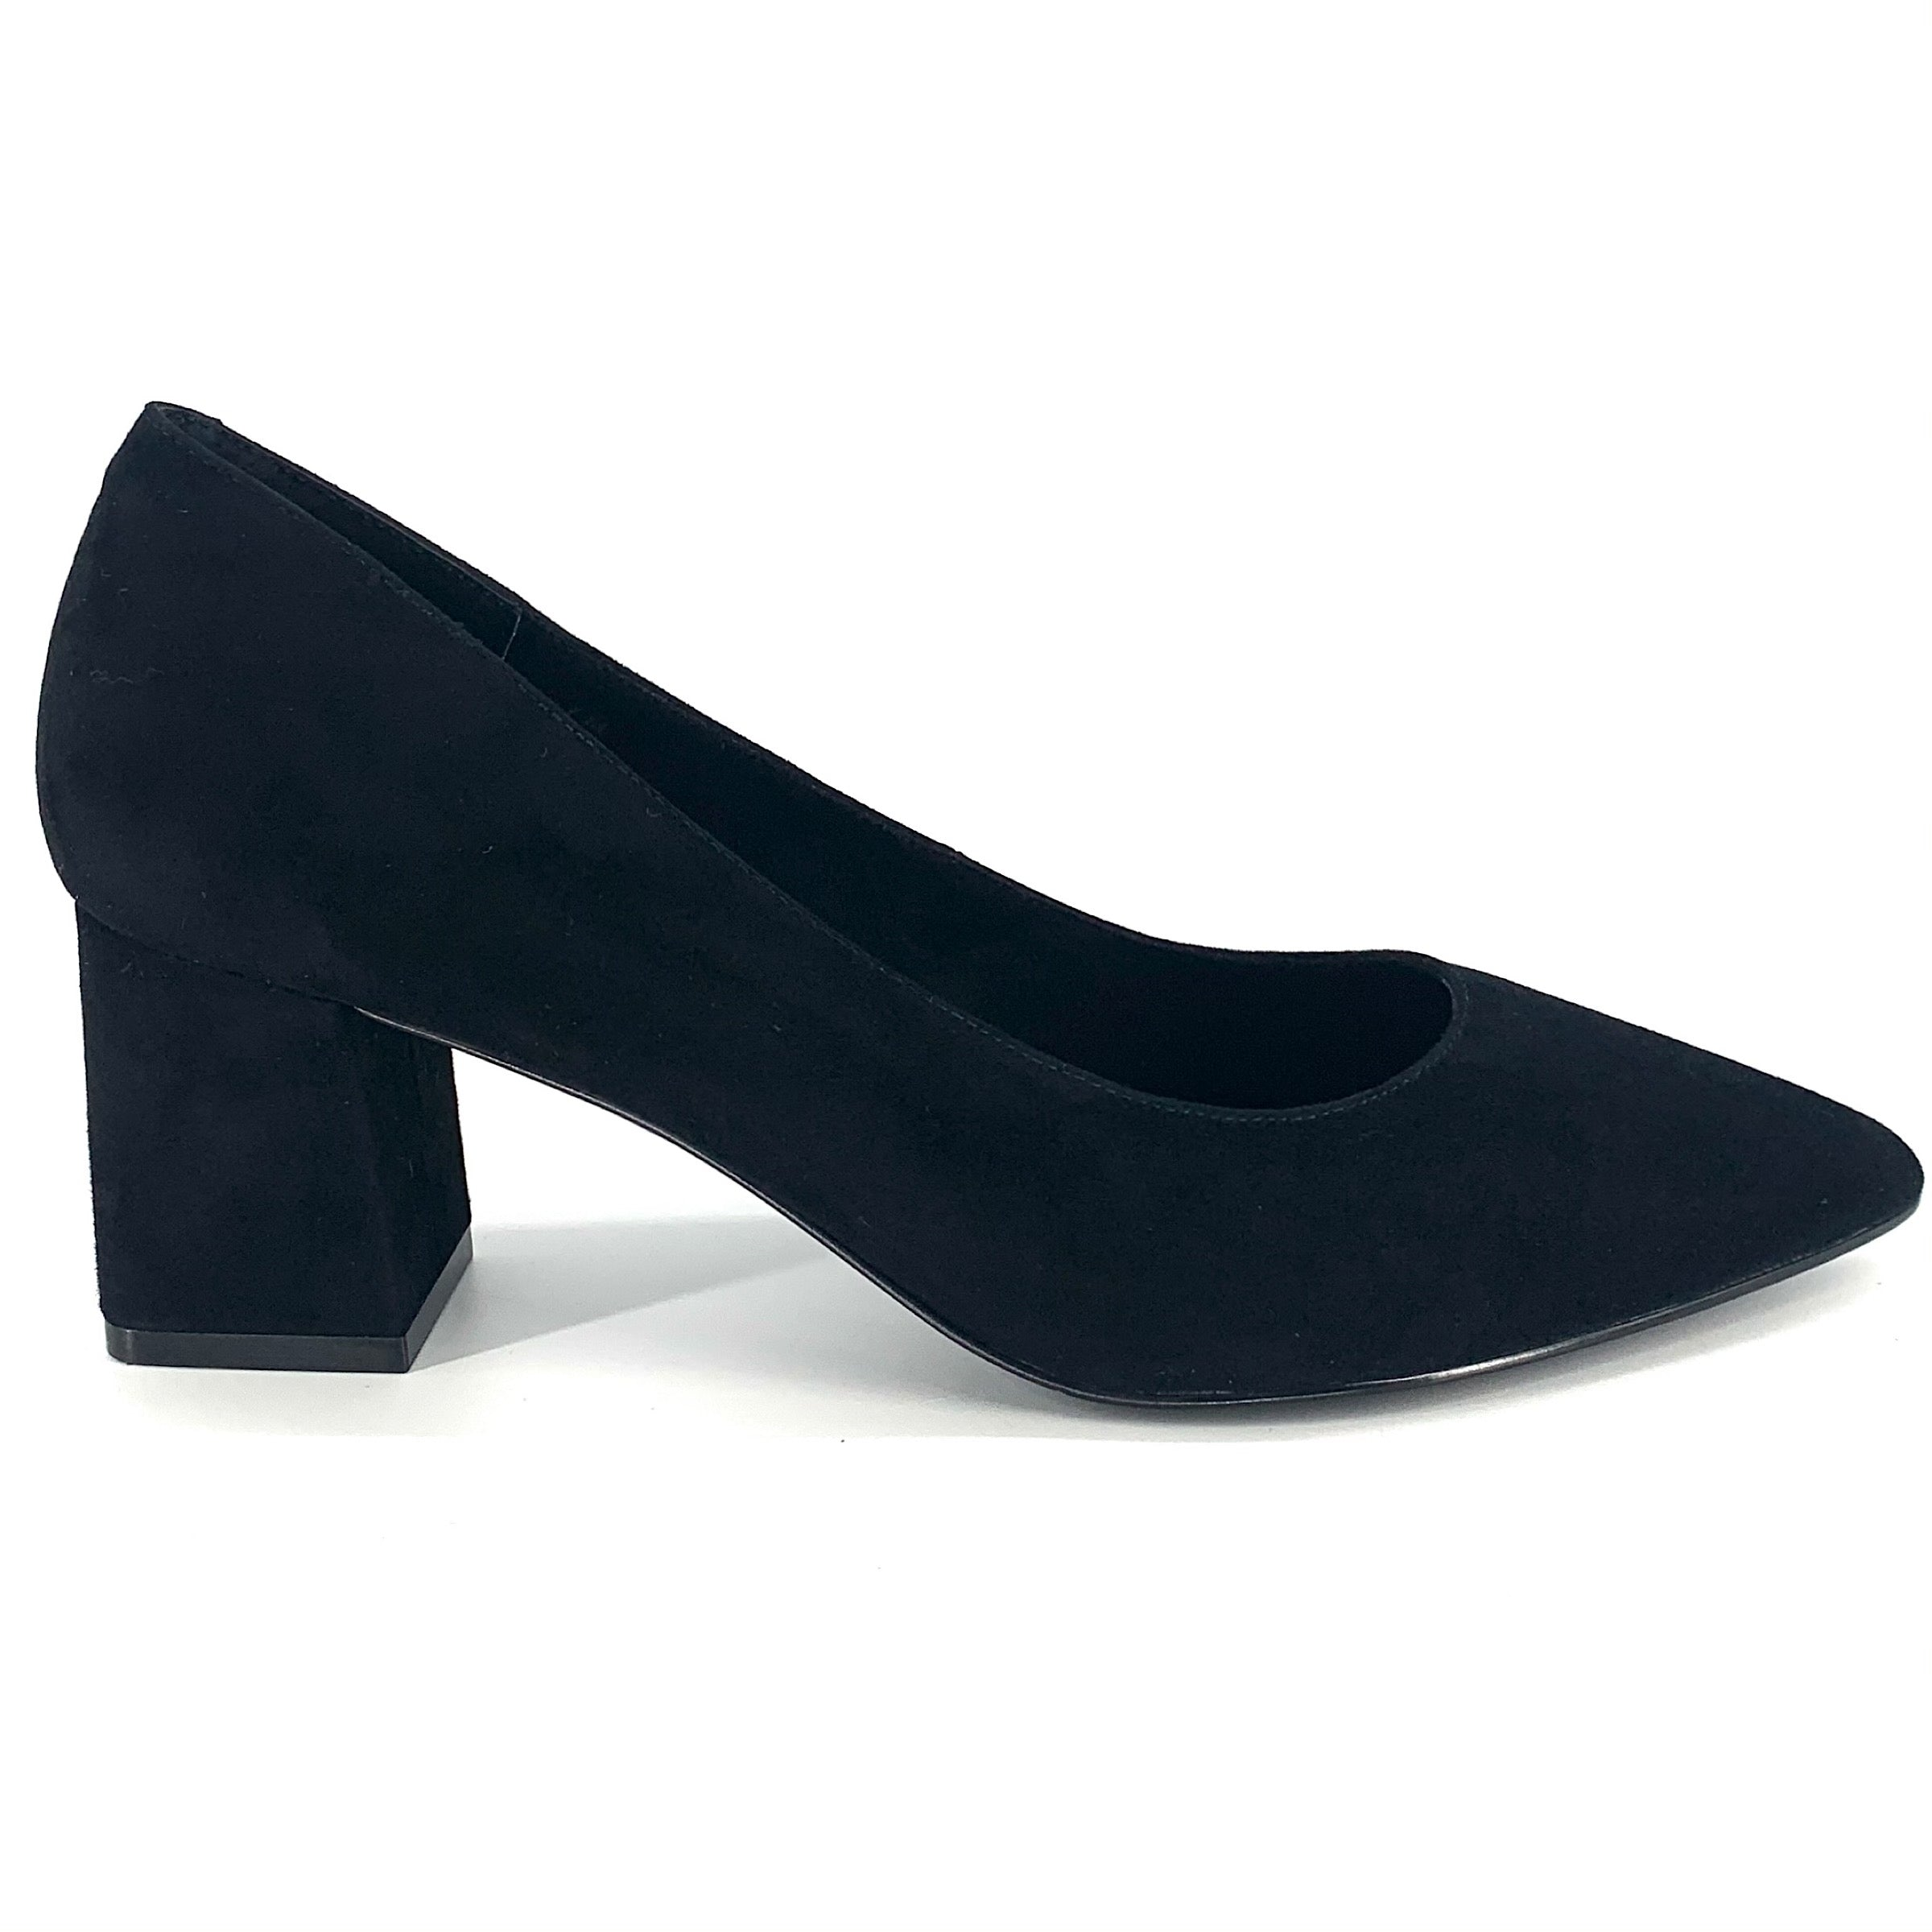 The Perfect Block Heel Pump in Black